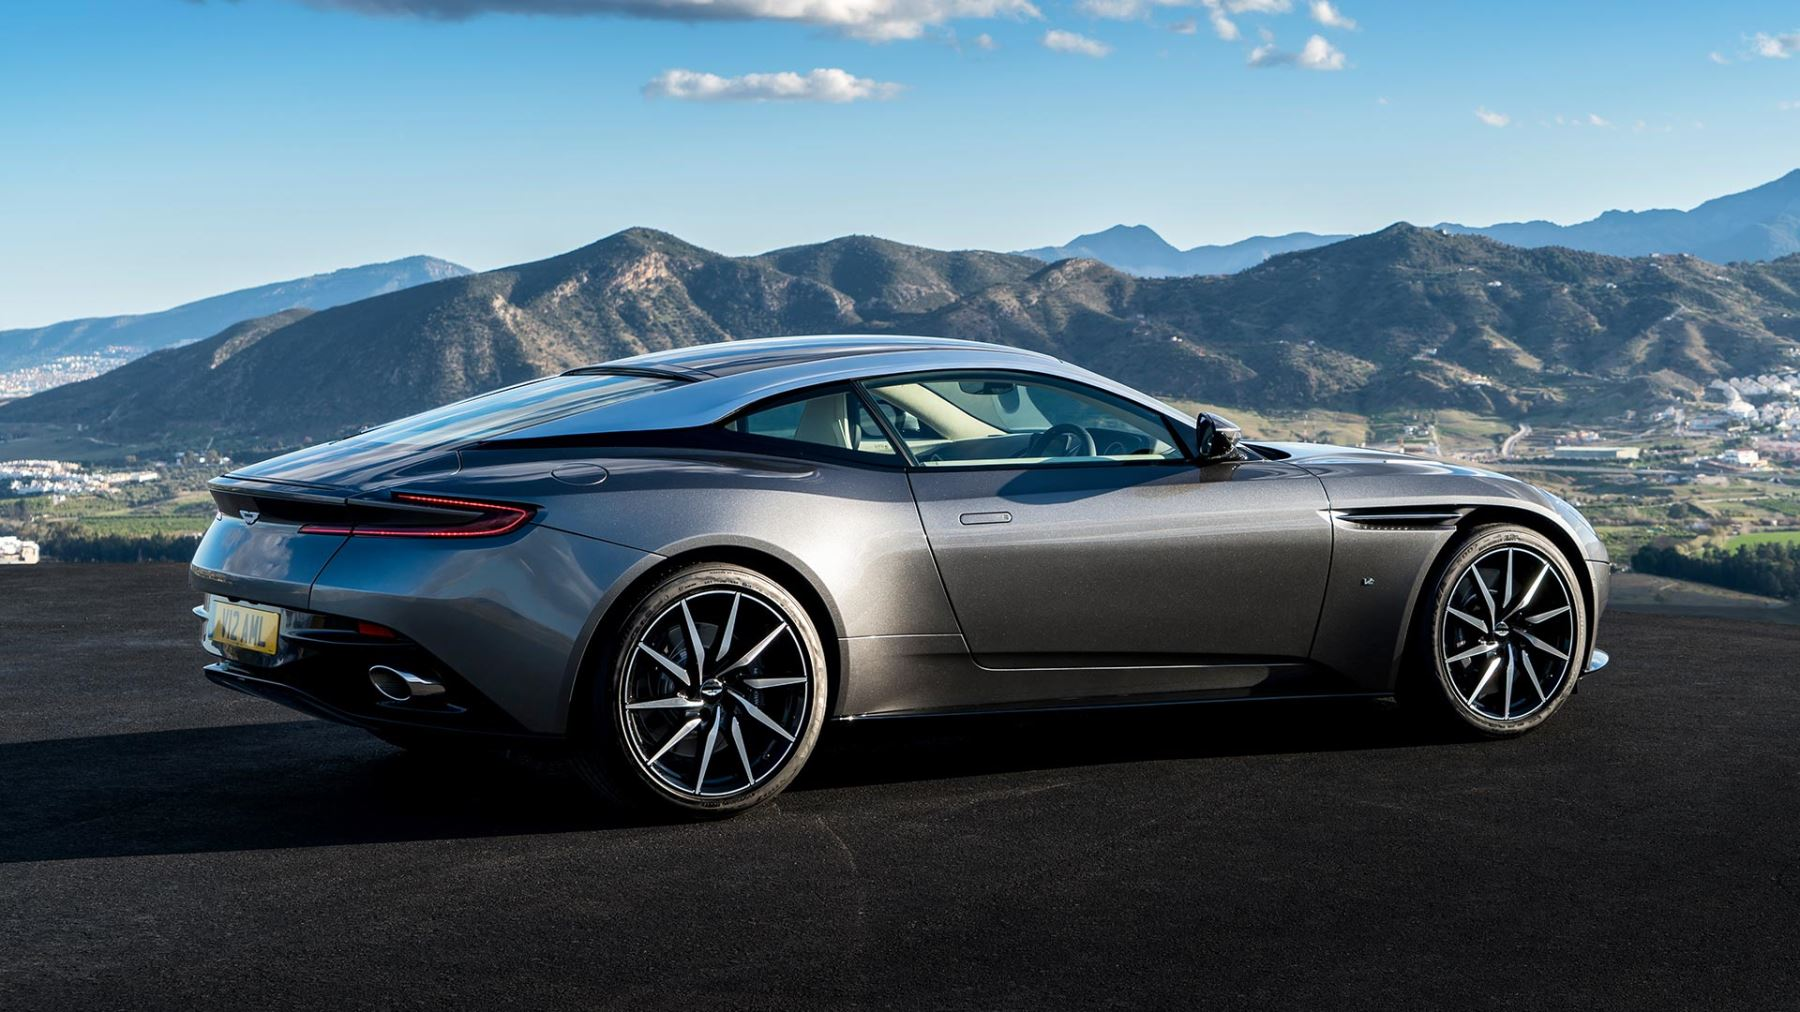 aston martin db11 v12 with 5 years free servicing*